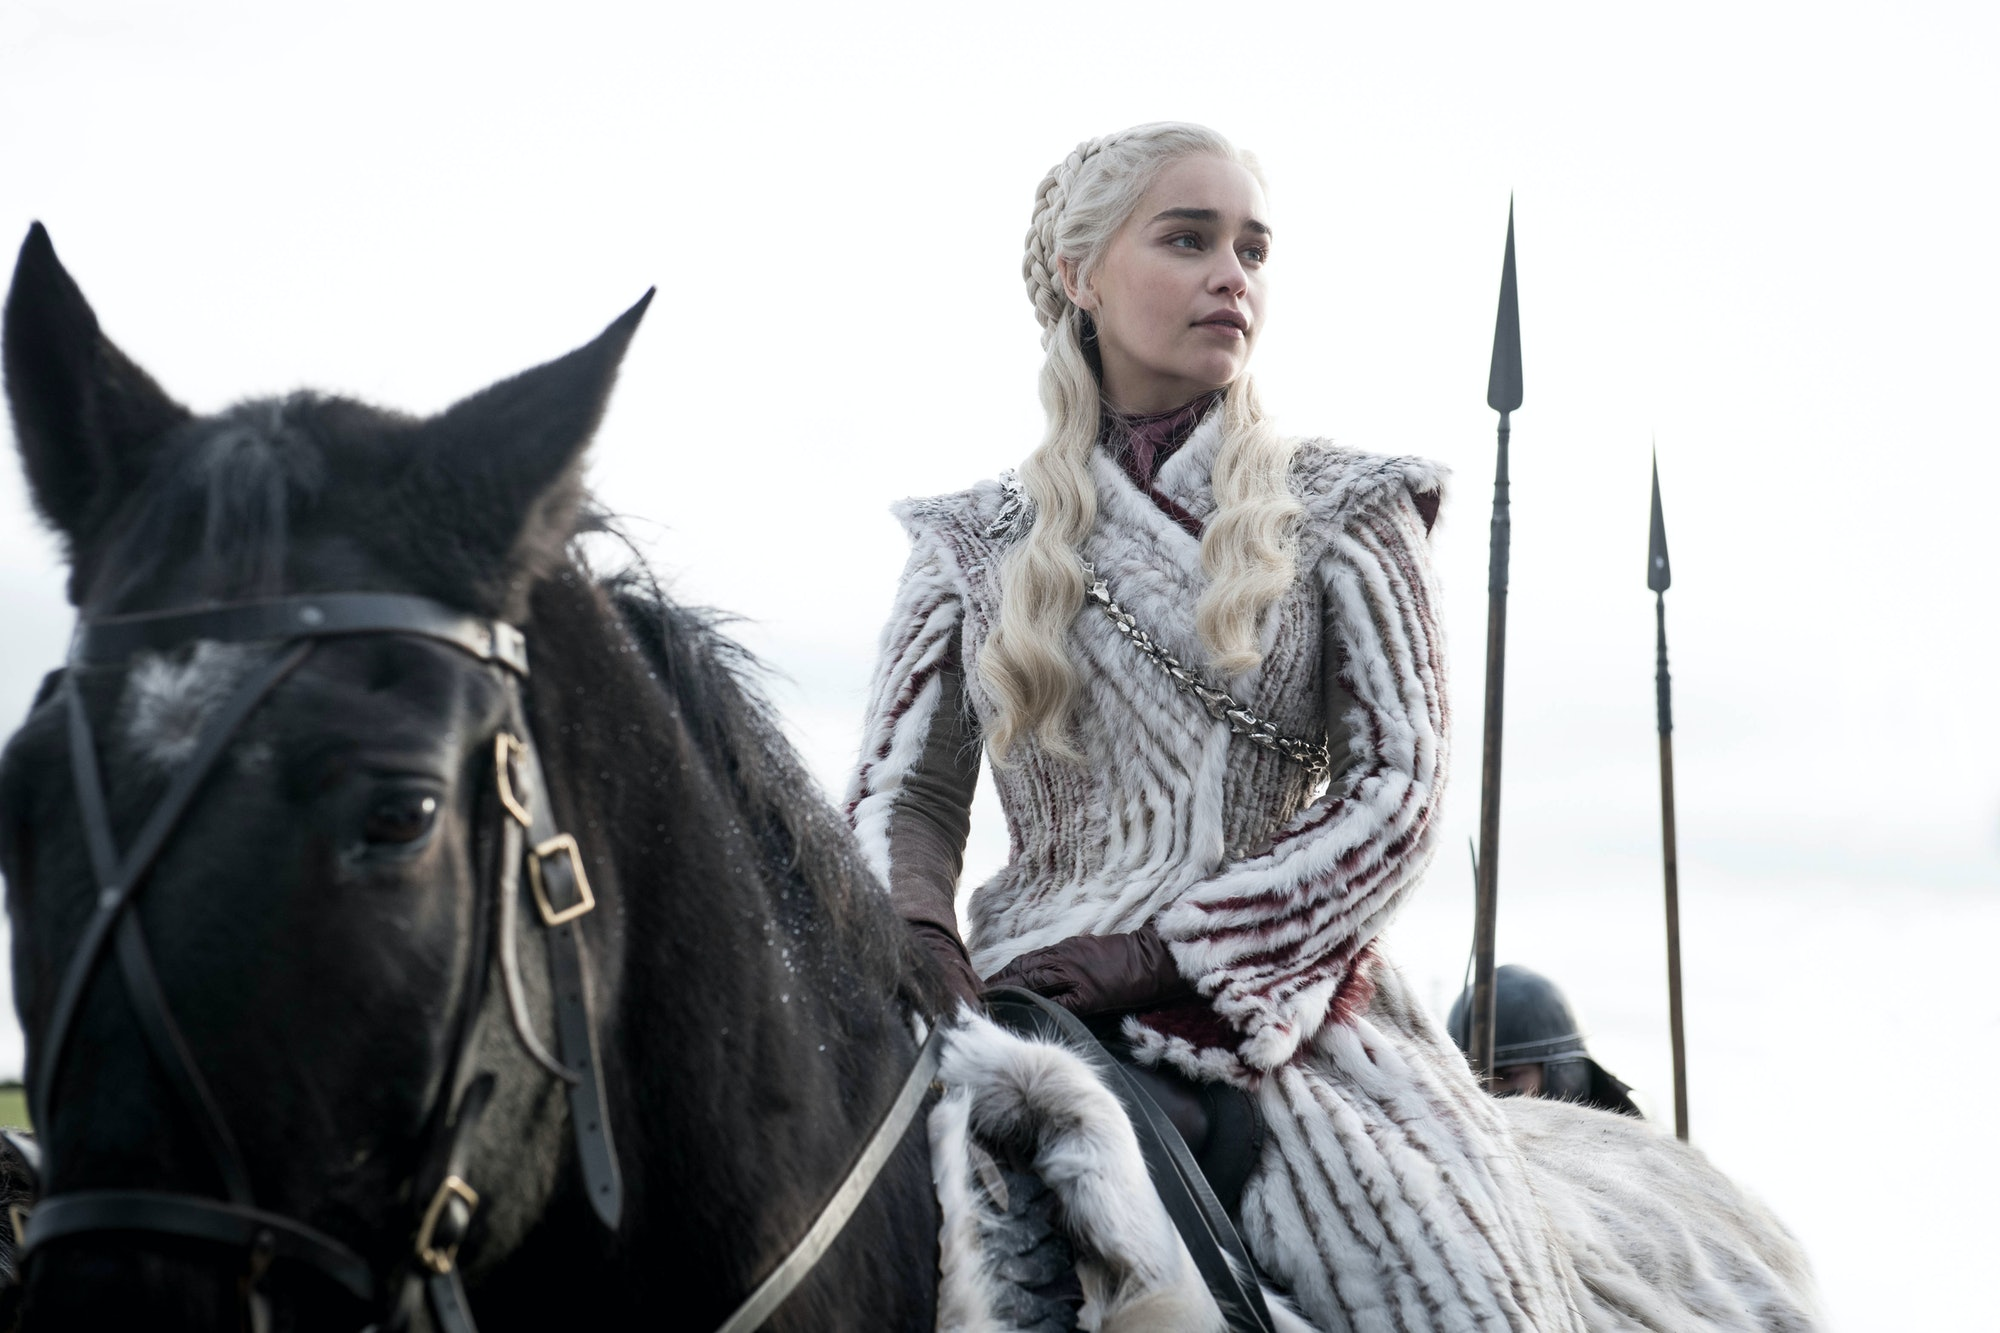 Game of Thrones Daenerys Targaryen Season 8